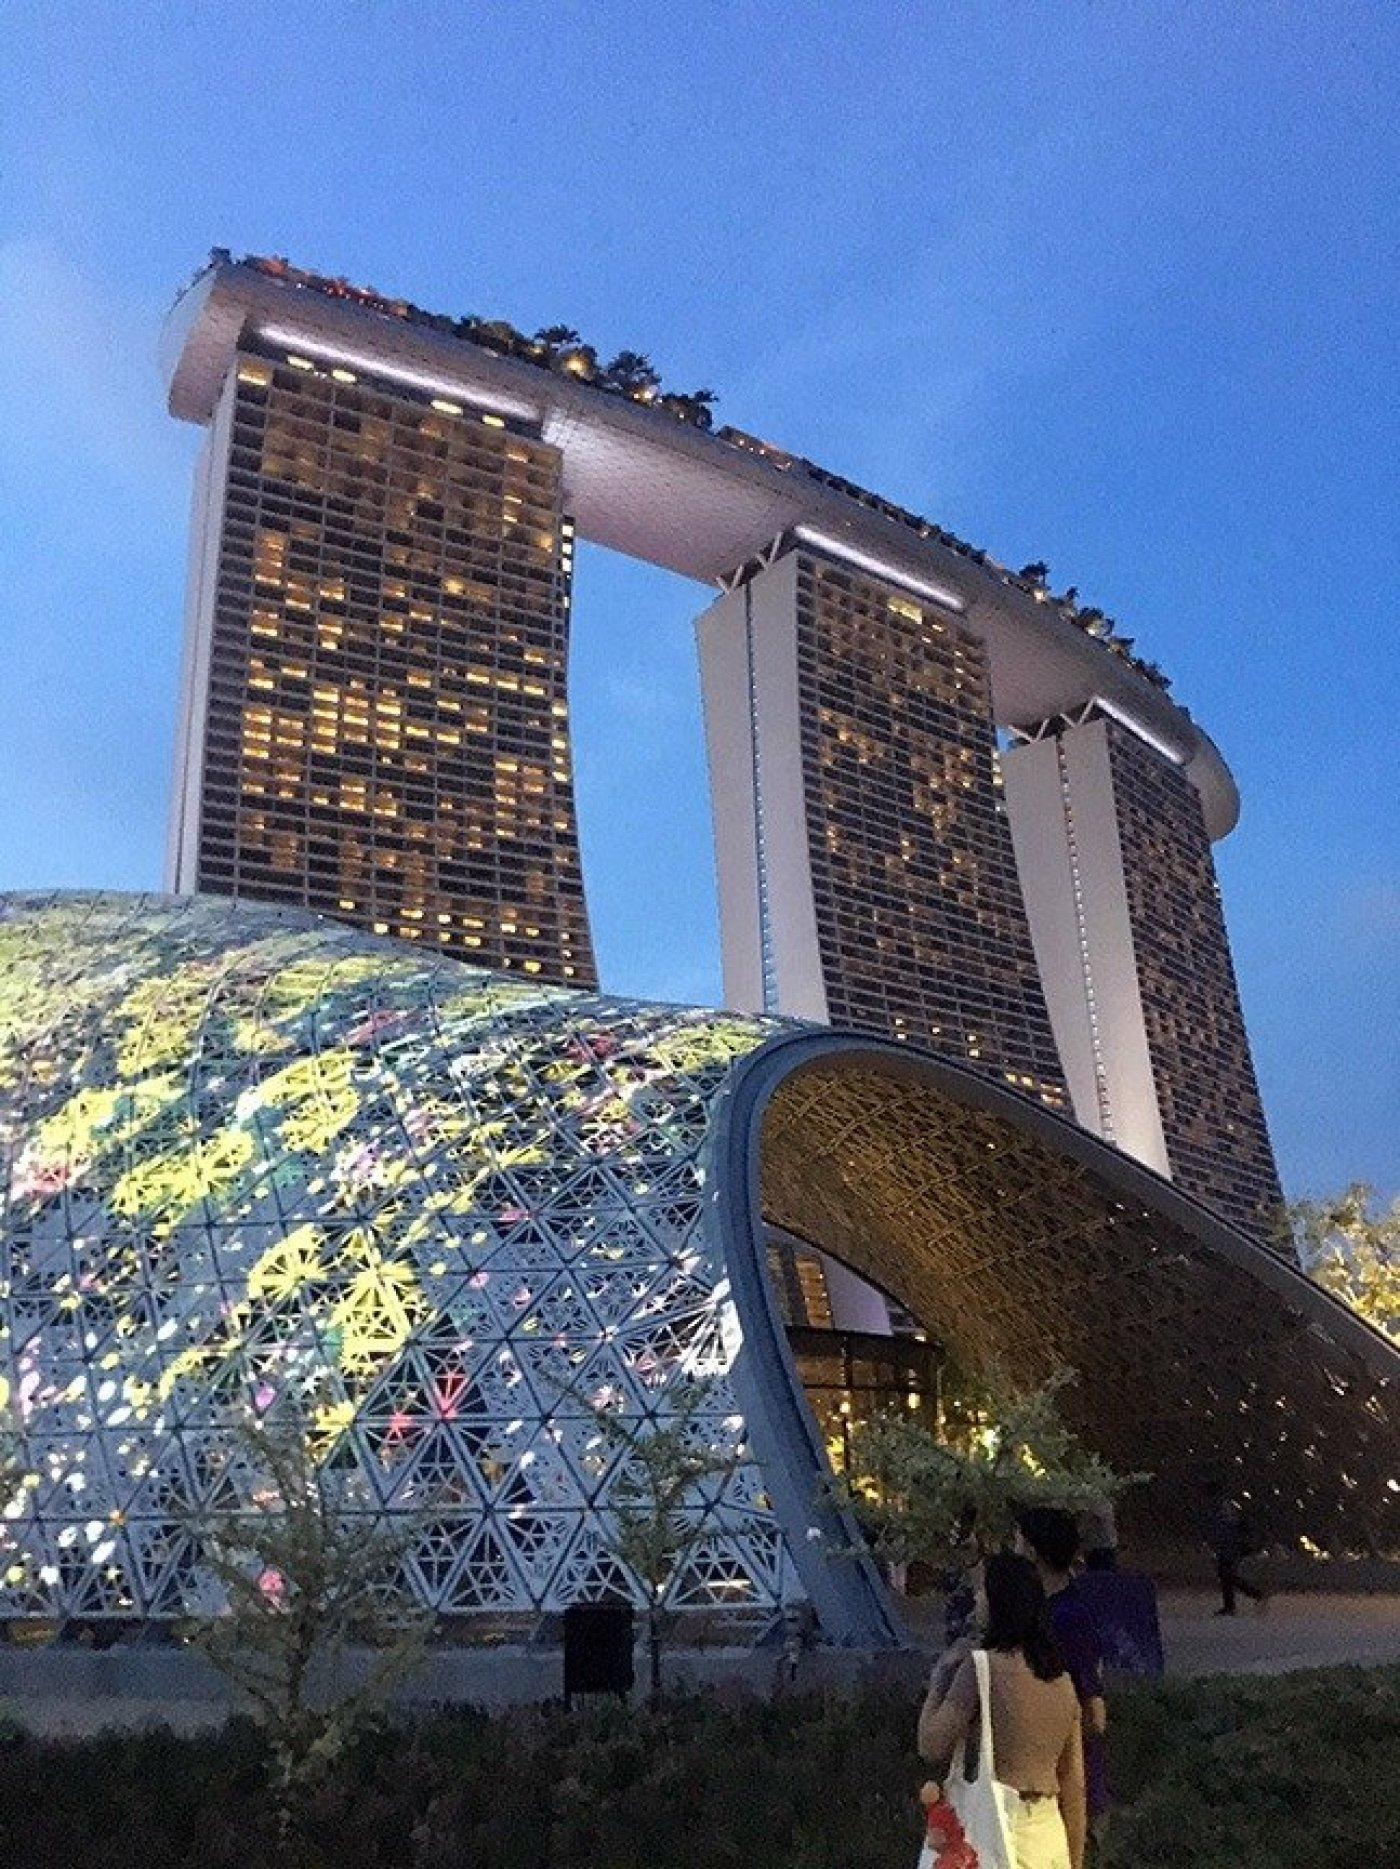 Singapore Hotel form Gardens by the Bay